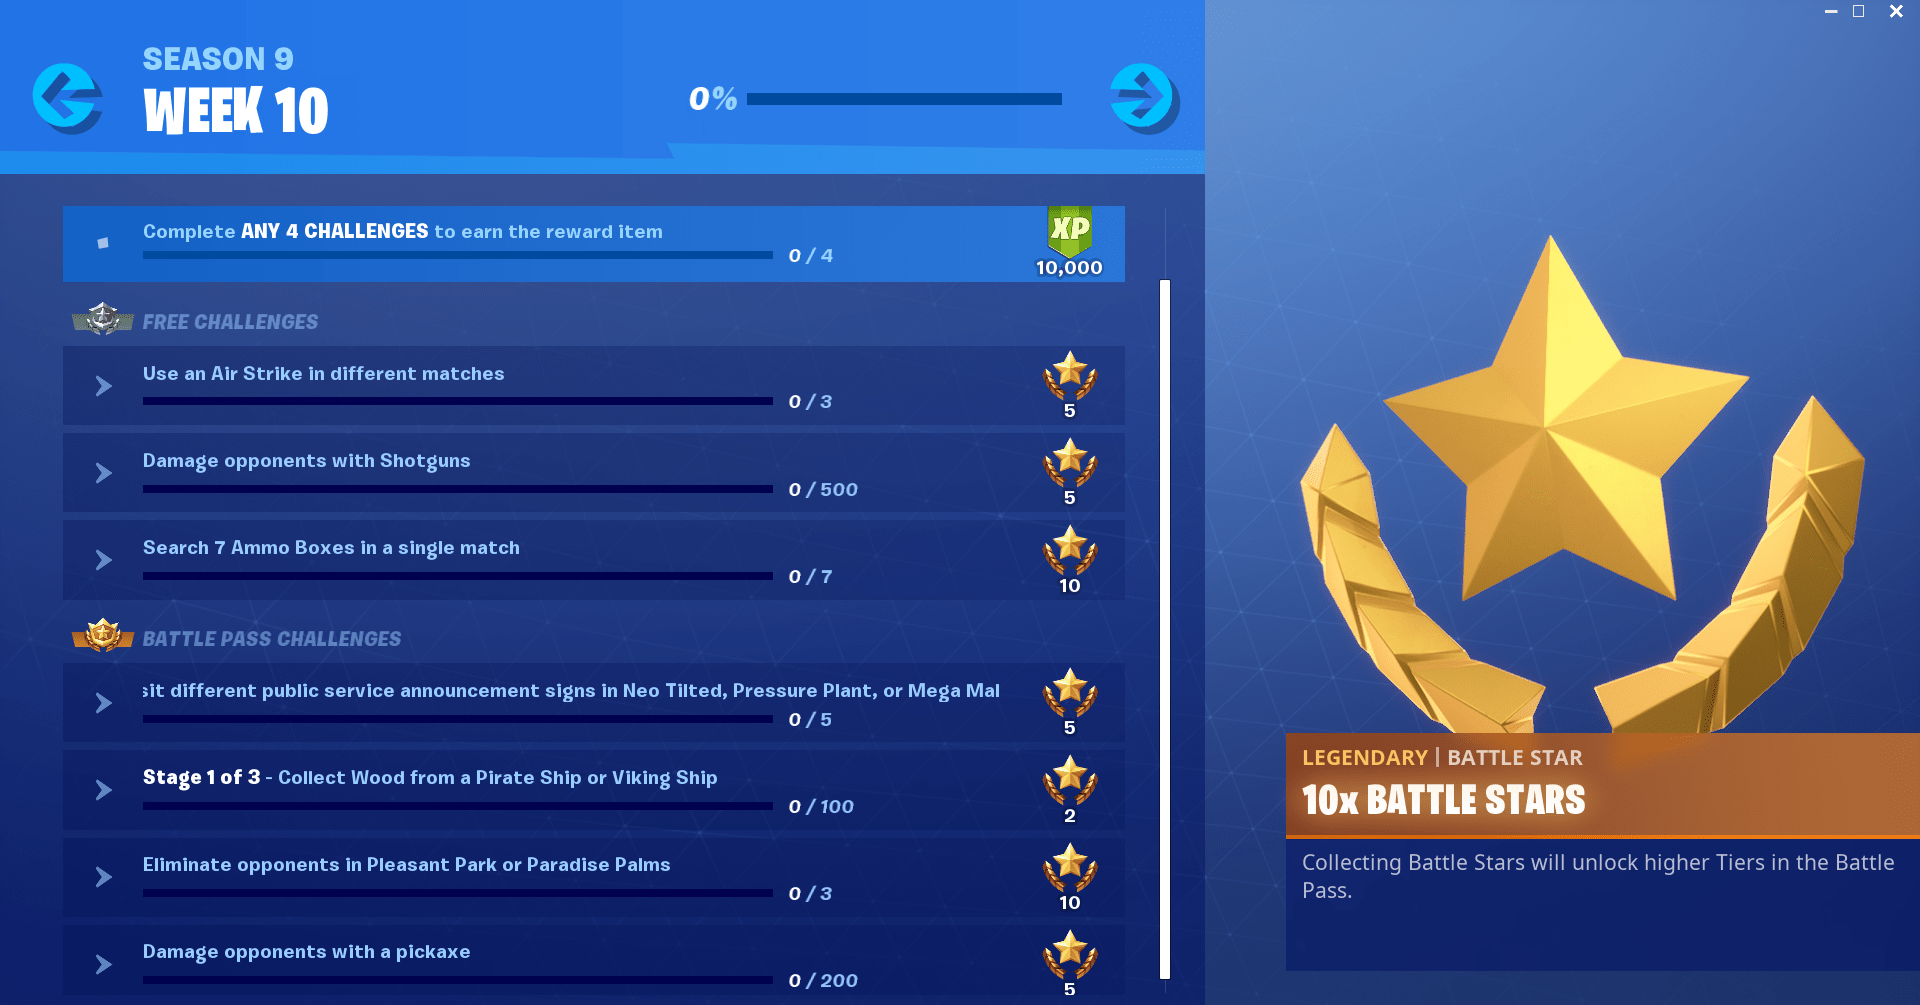 Fortnite Season 9, Week 10 Challenges